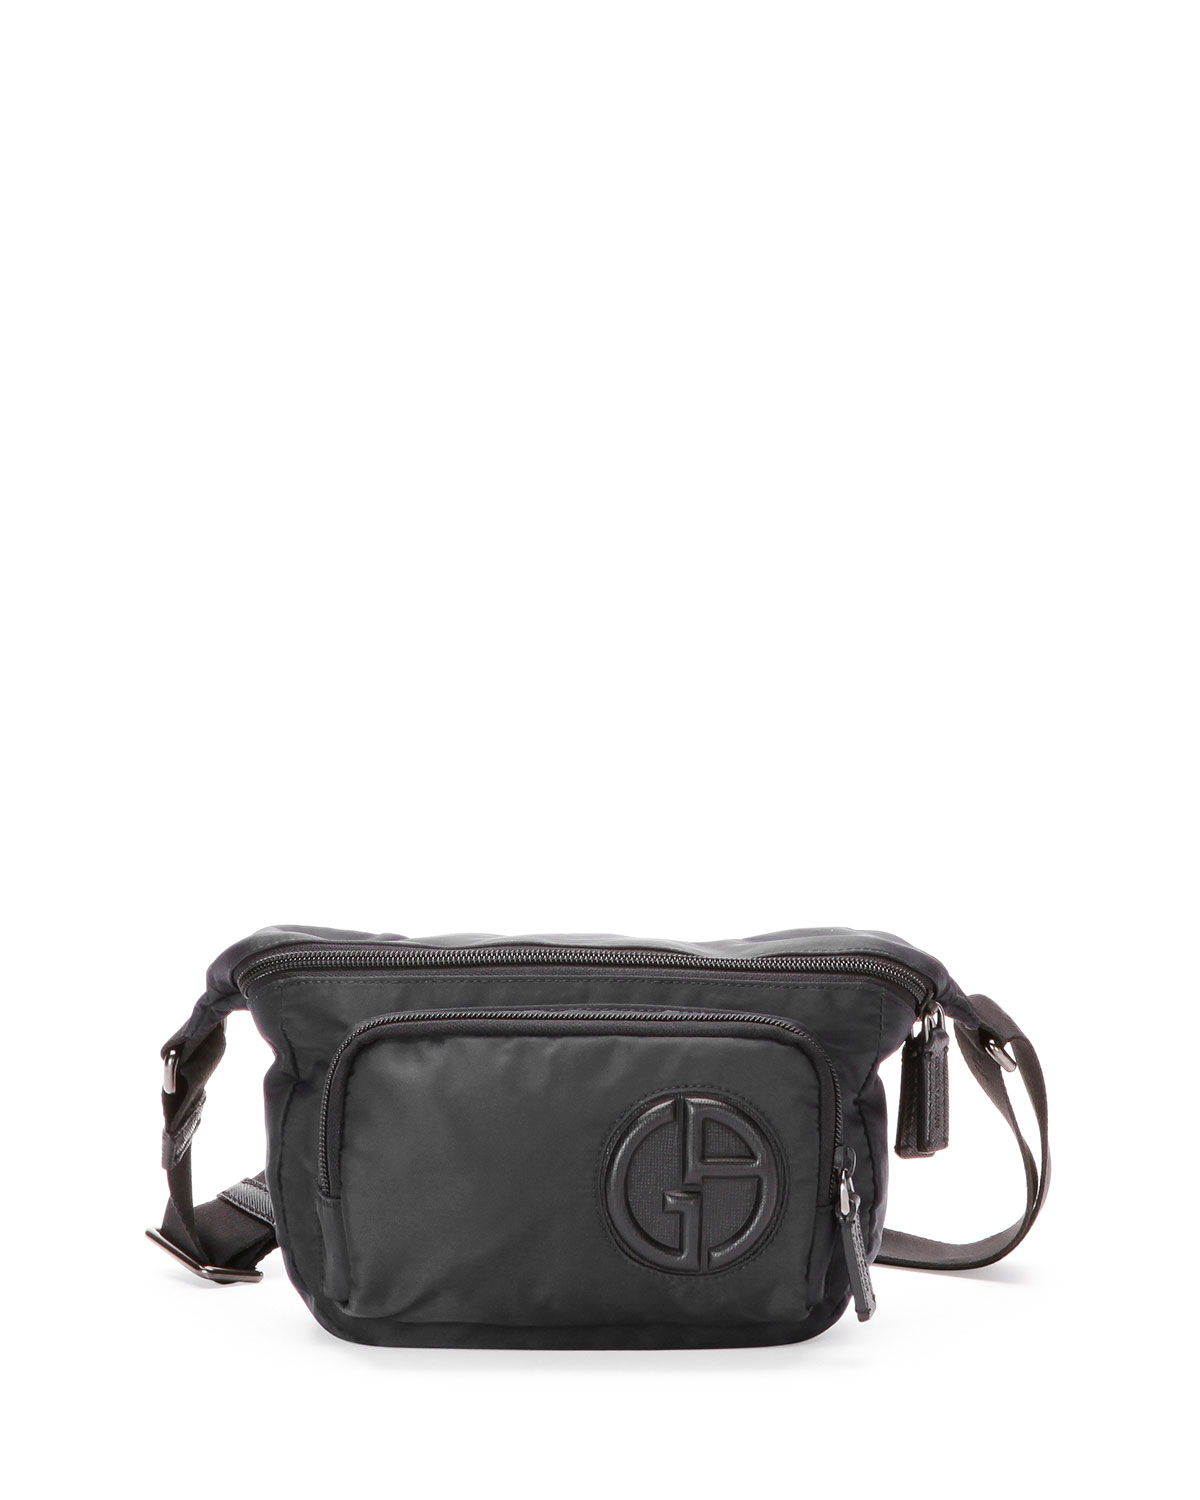 9f83087f13 Nylon Belt Bag with Leather Trim